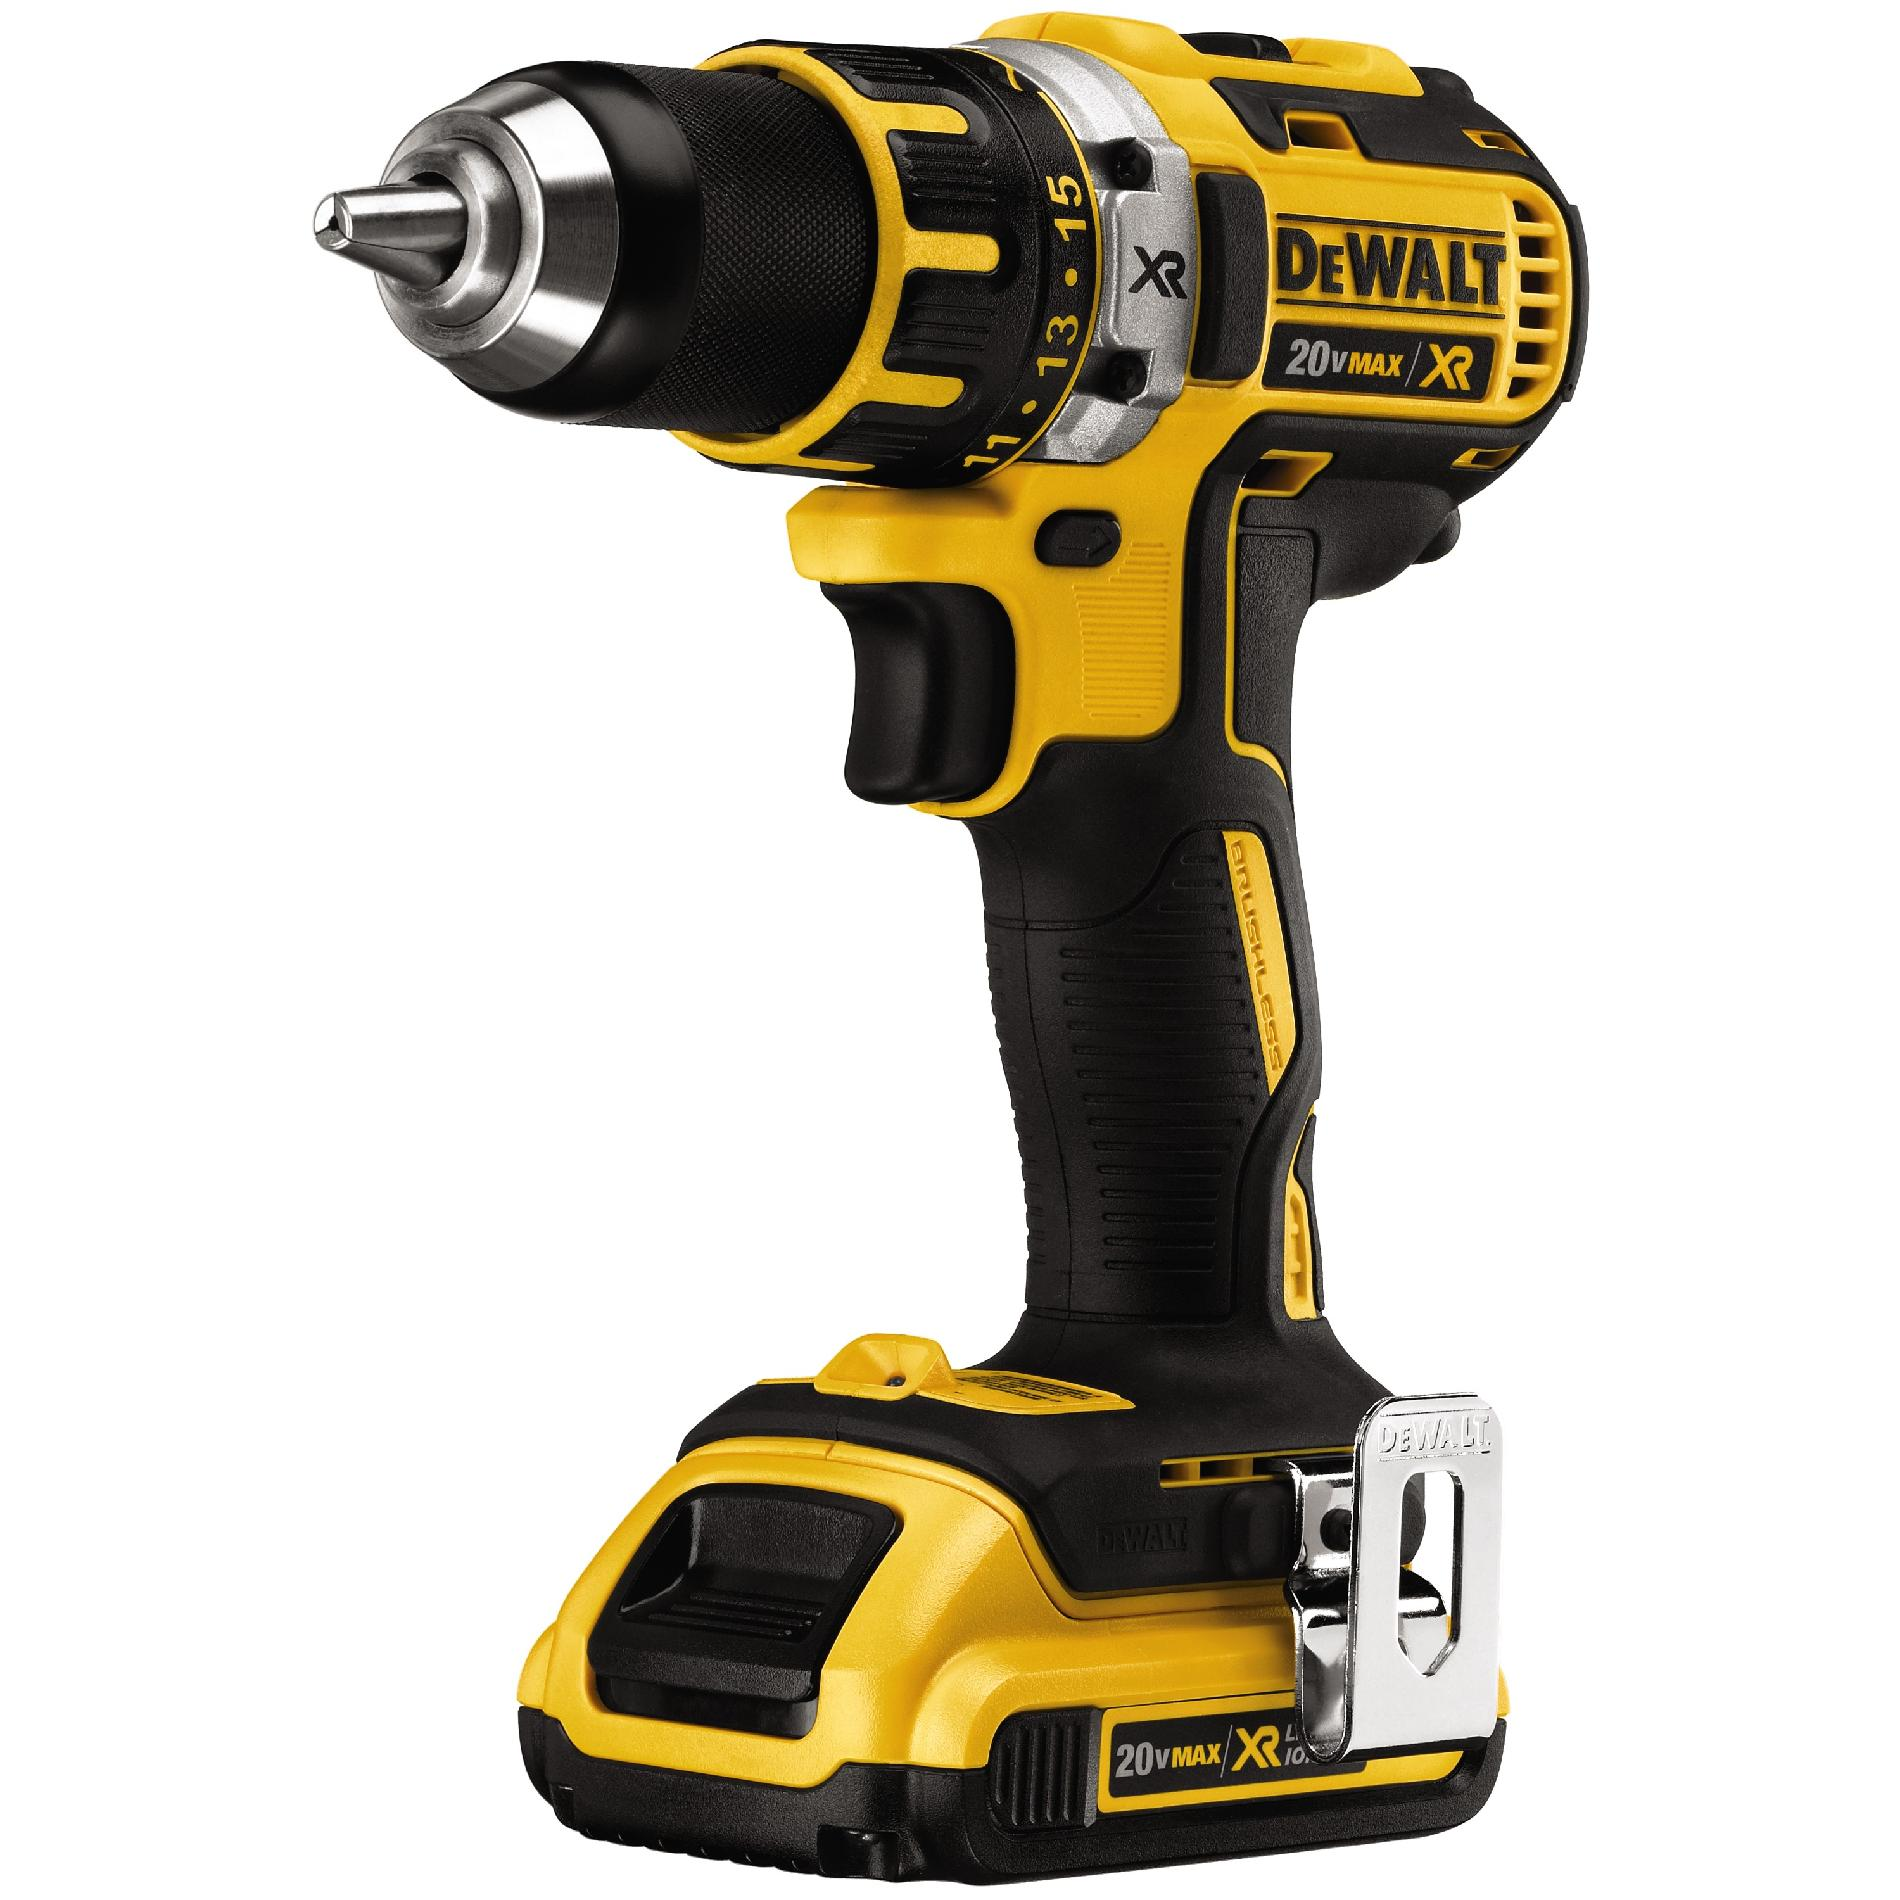 DeWalt 20 V MAX* XR Lithium Ion Brushless 1/4 In. Impact Driver Kit